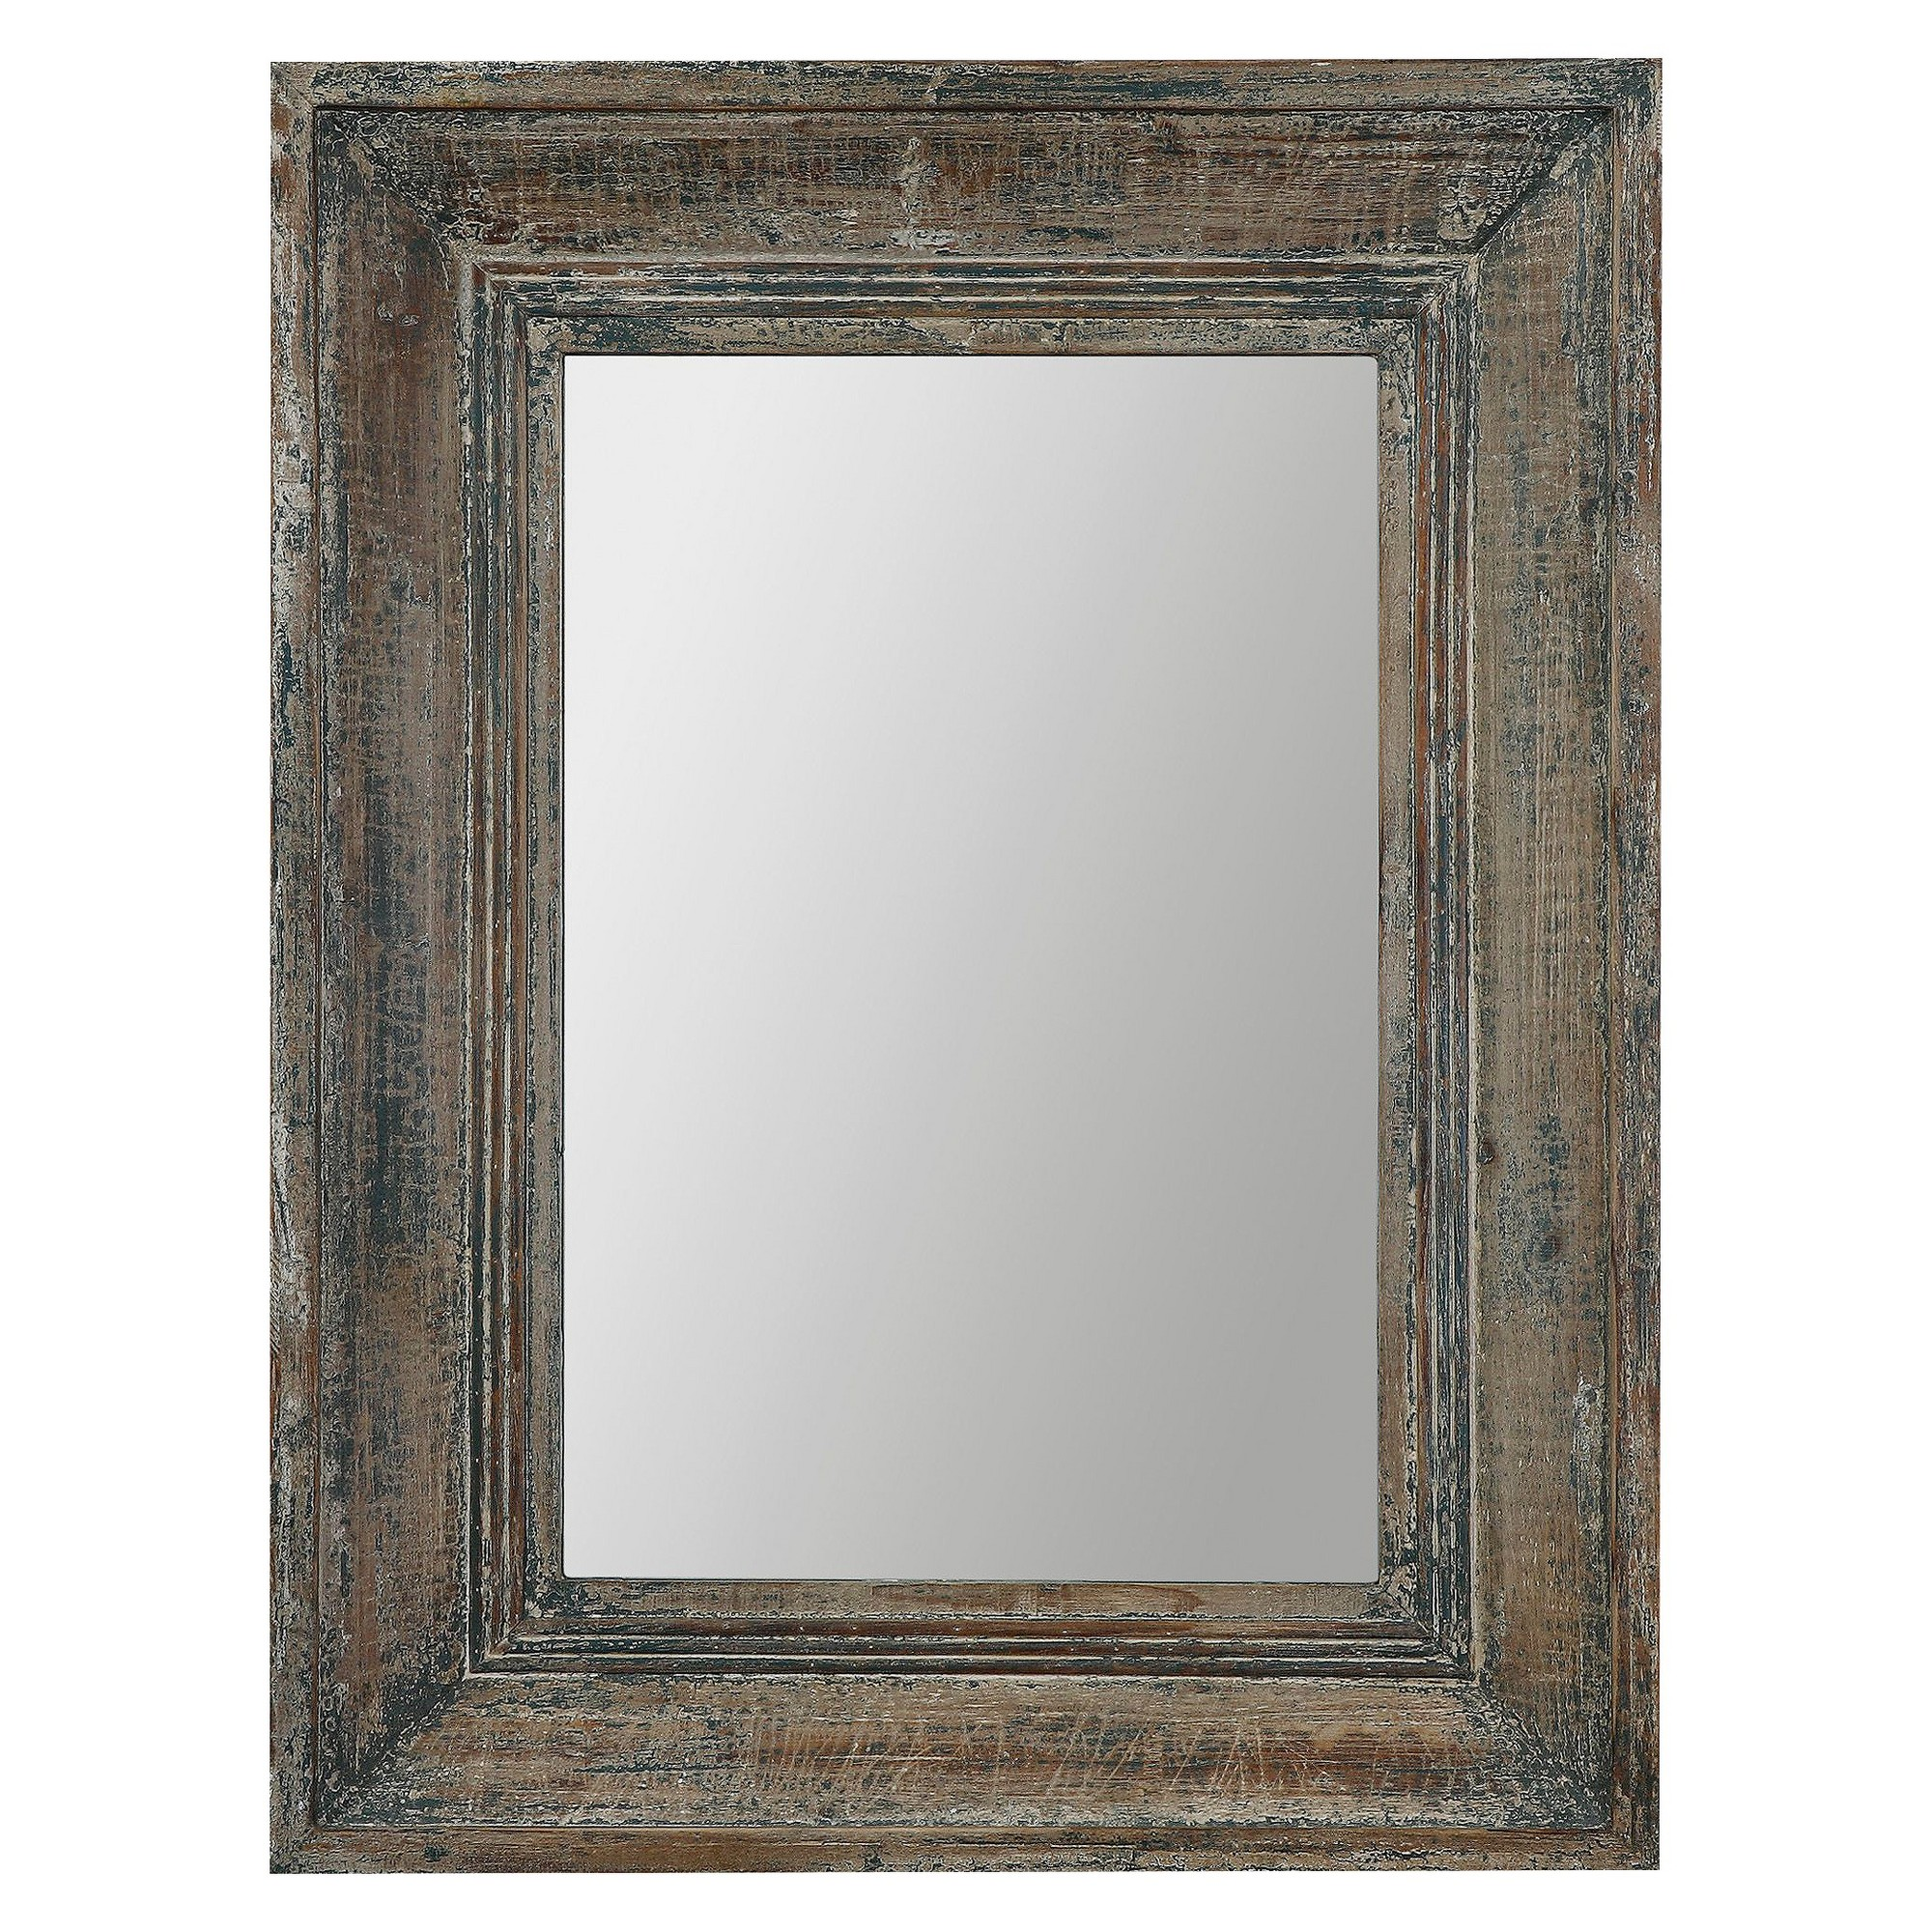 Rectangle Missoula Decorative Wall Mirror  Uttermost